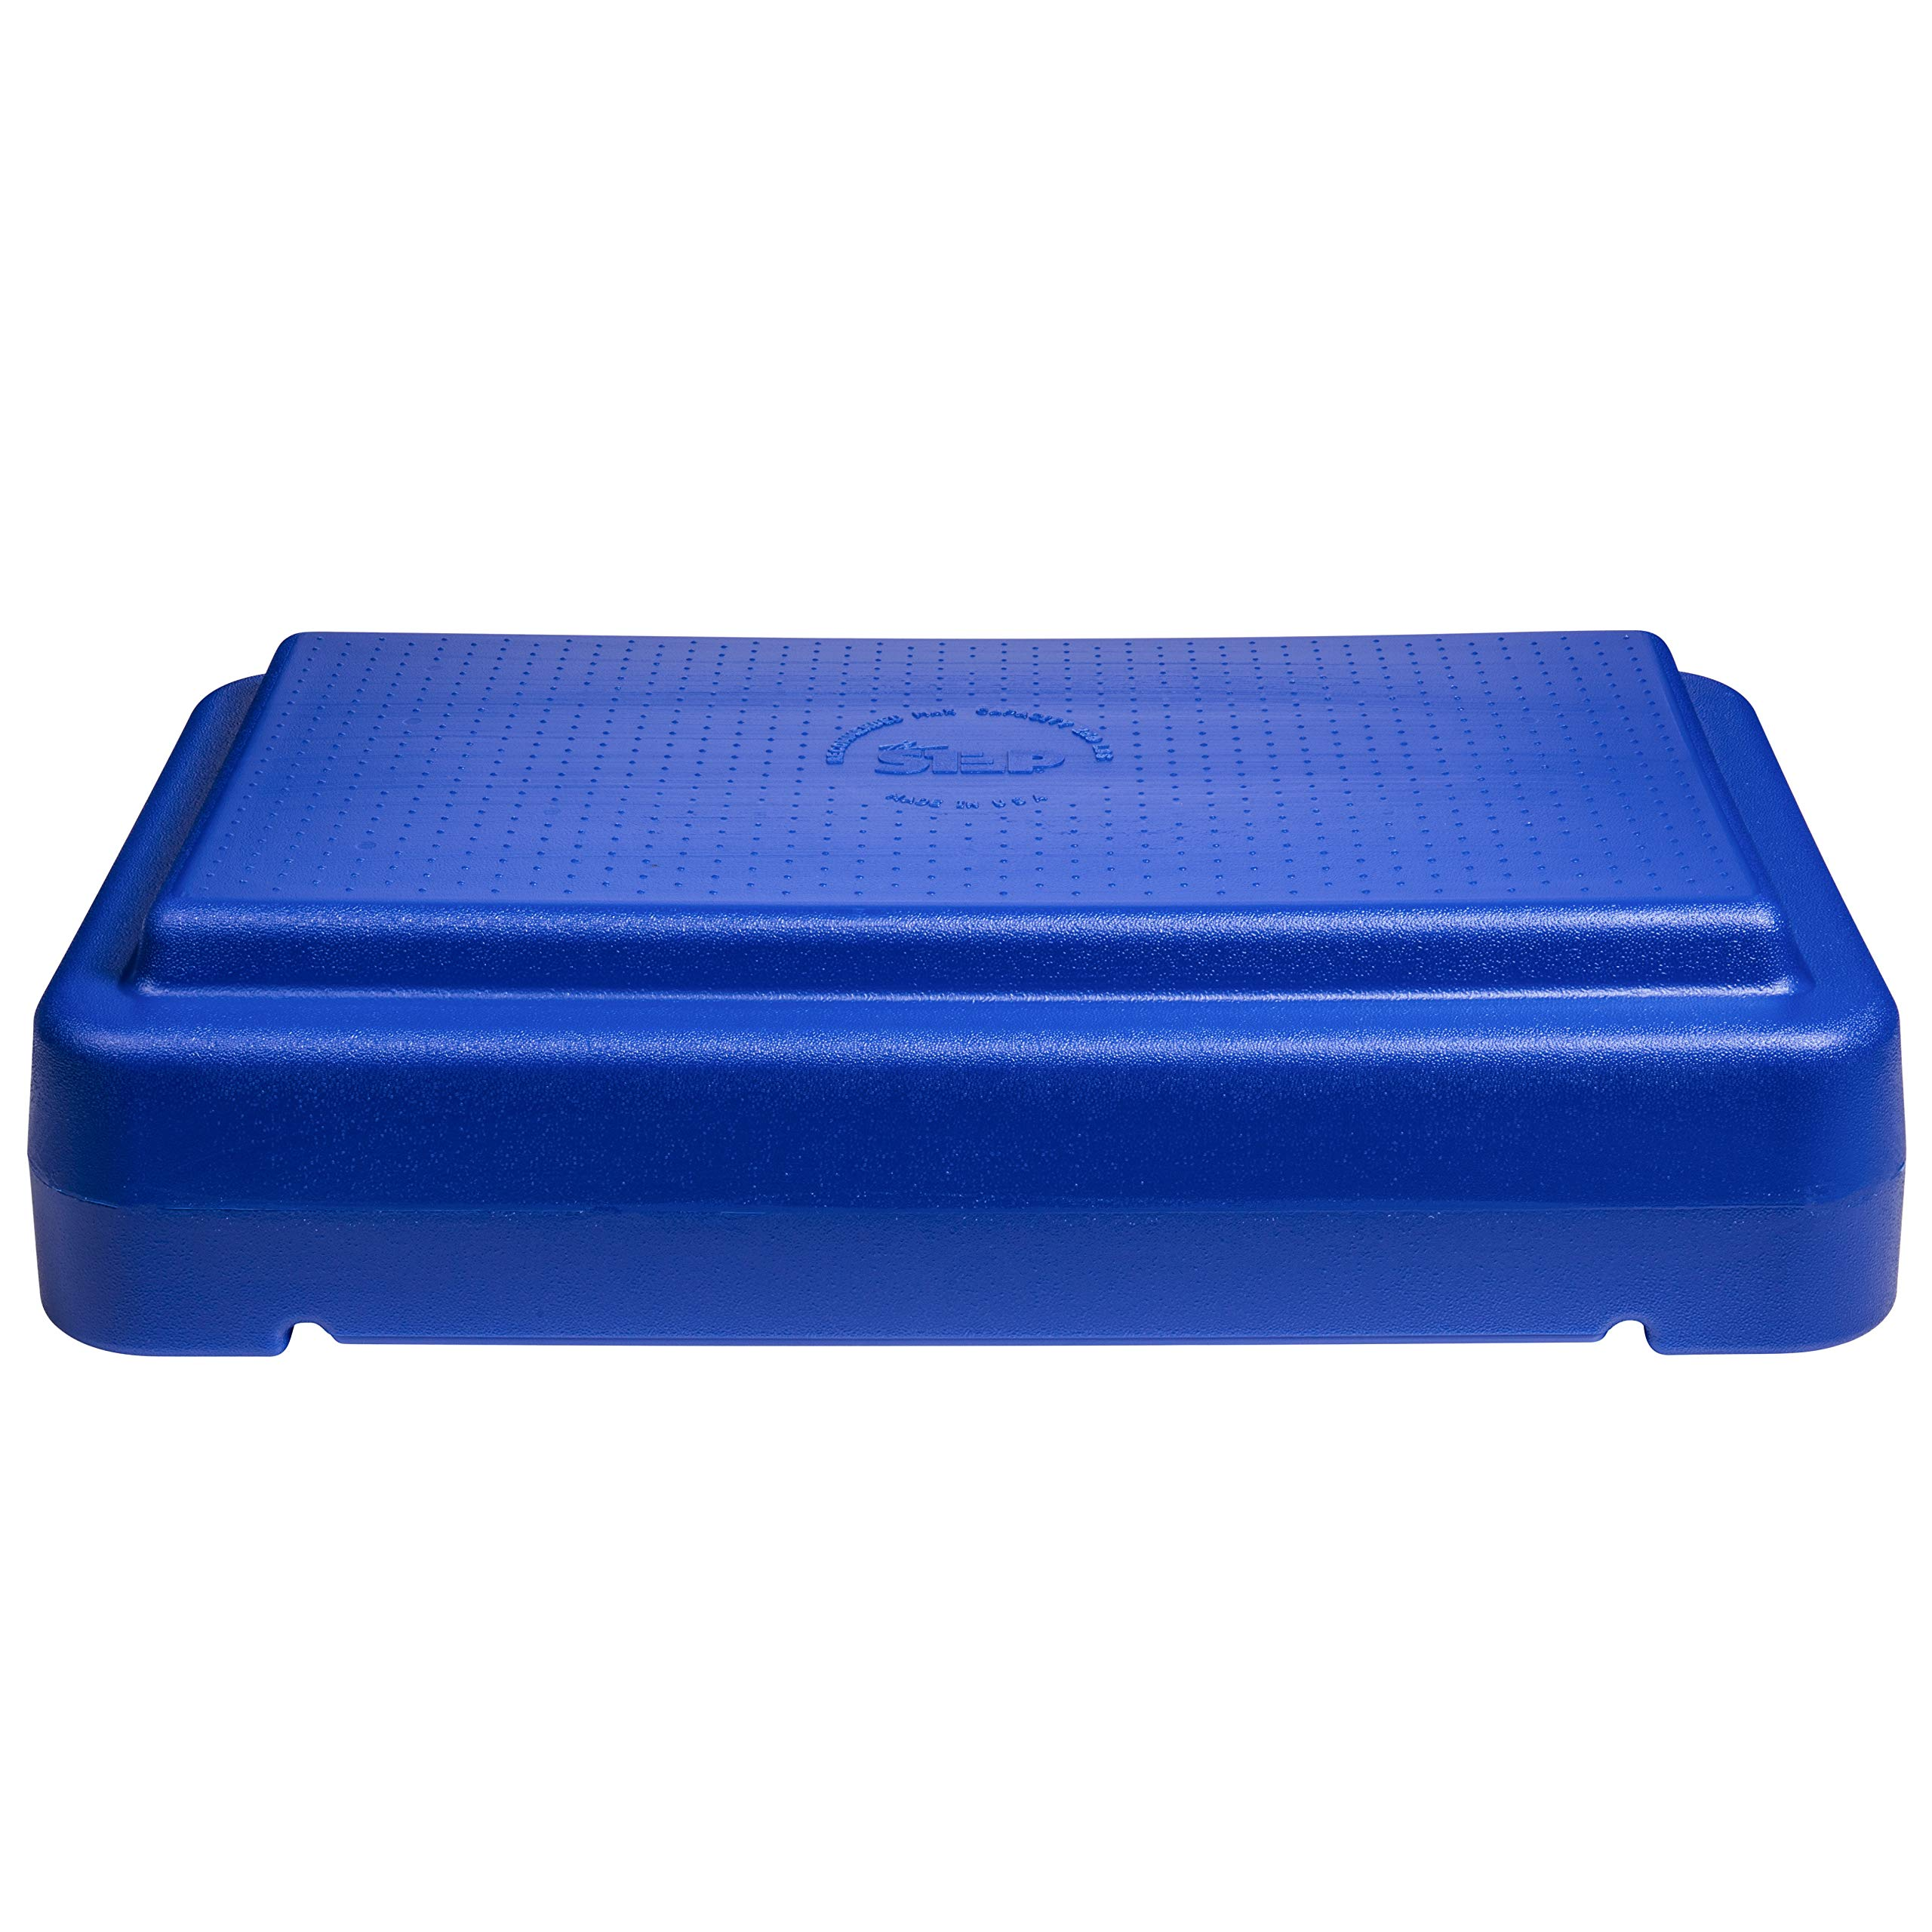 The Step 6'' Stackable Aerobic Exercise Non-Slip Platform with Nonskid Feet to Prevent Sliding